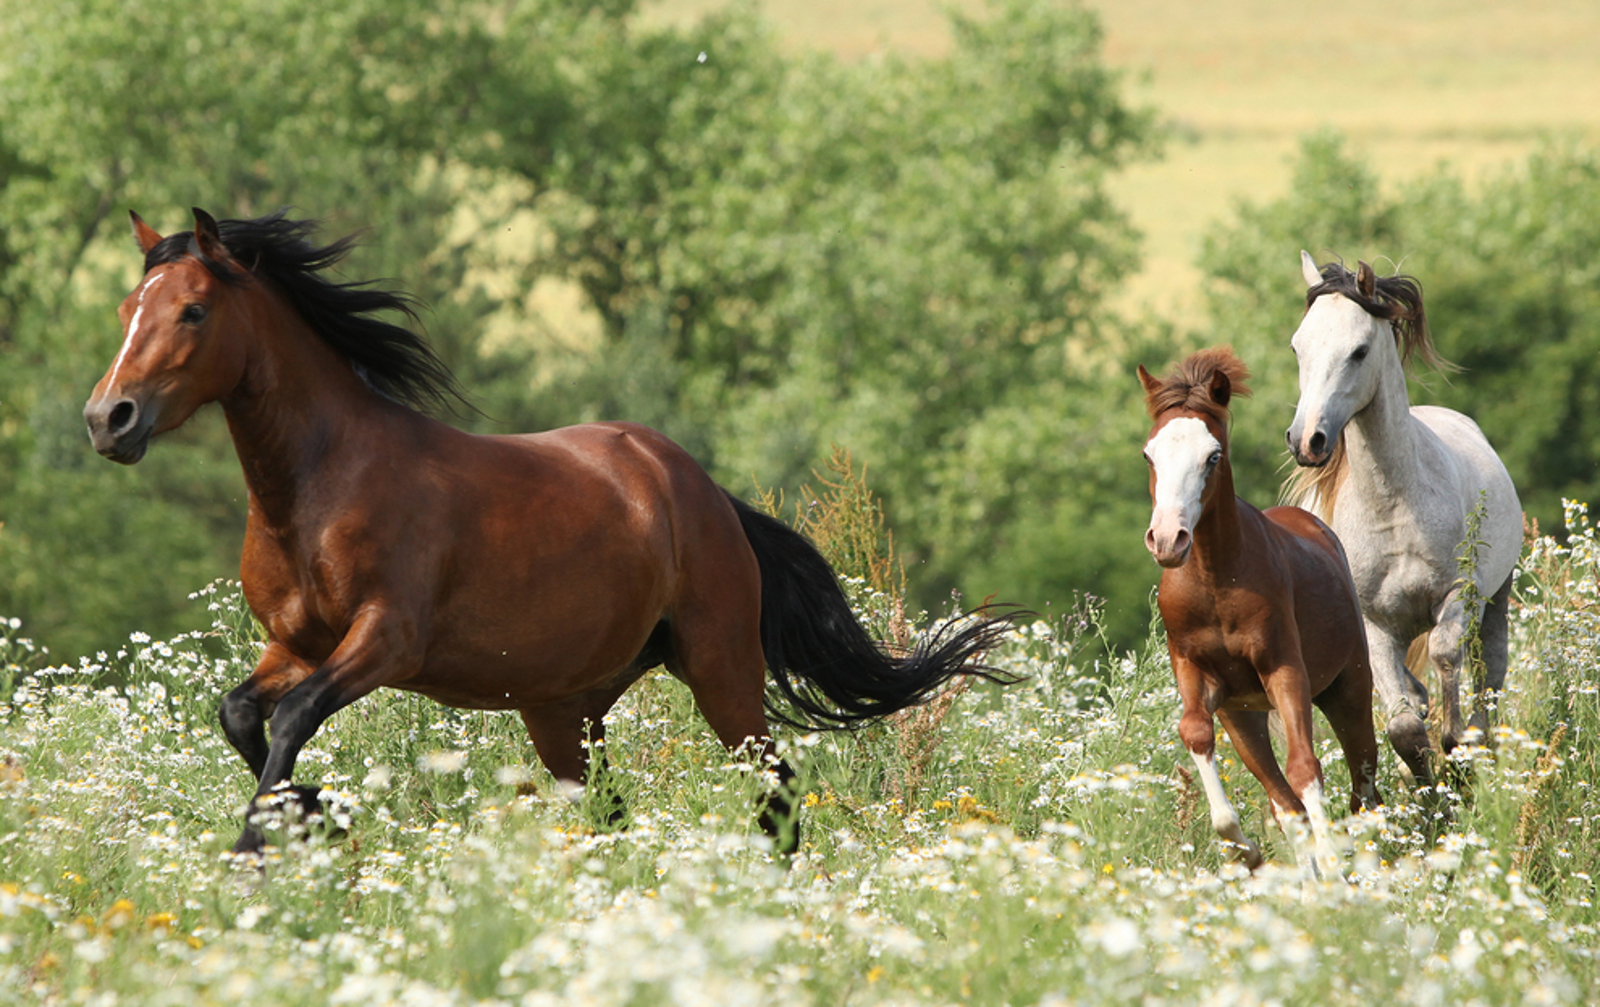 Urgent Action Needed Now to Stop Horrific Sterilization of Wild Horses